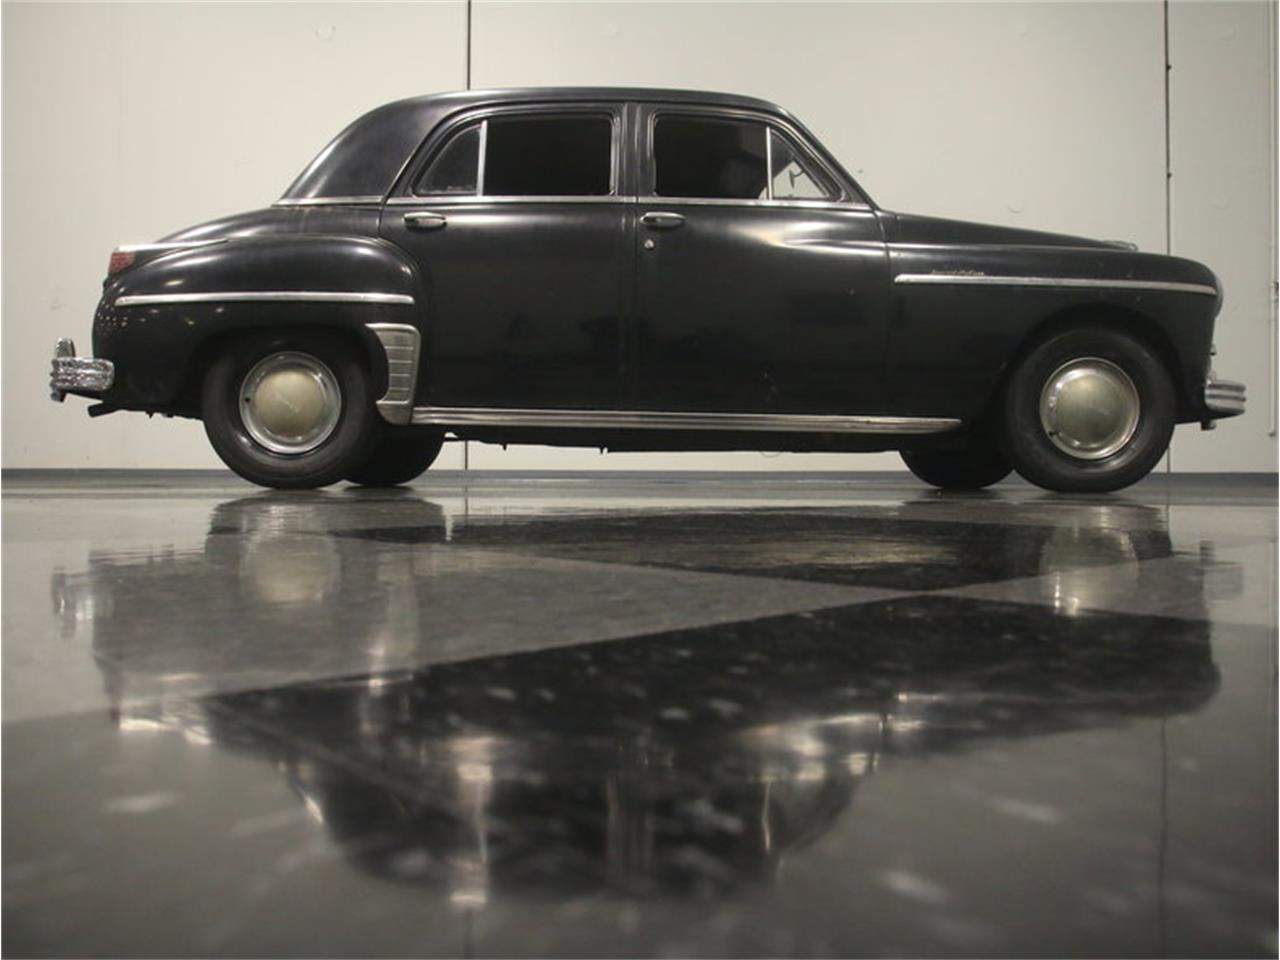 Large Picture of 1949 Special Deluxe located in Georgia - $8,995.00 Offered by Streetside Classics - Atlanta - L551